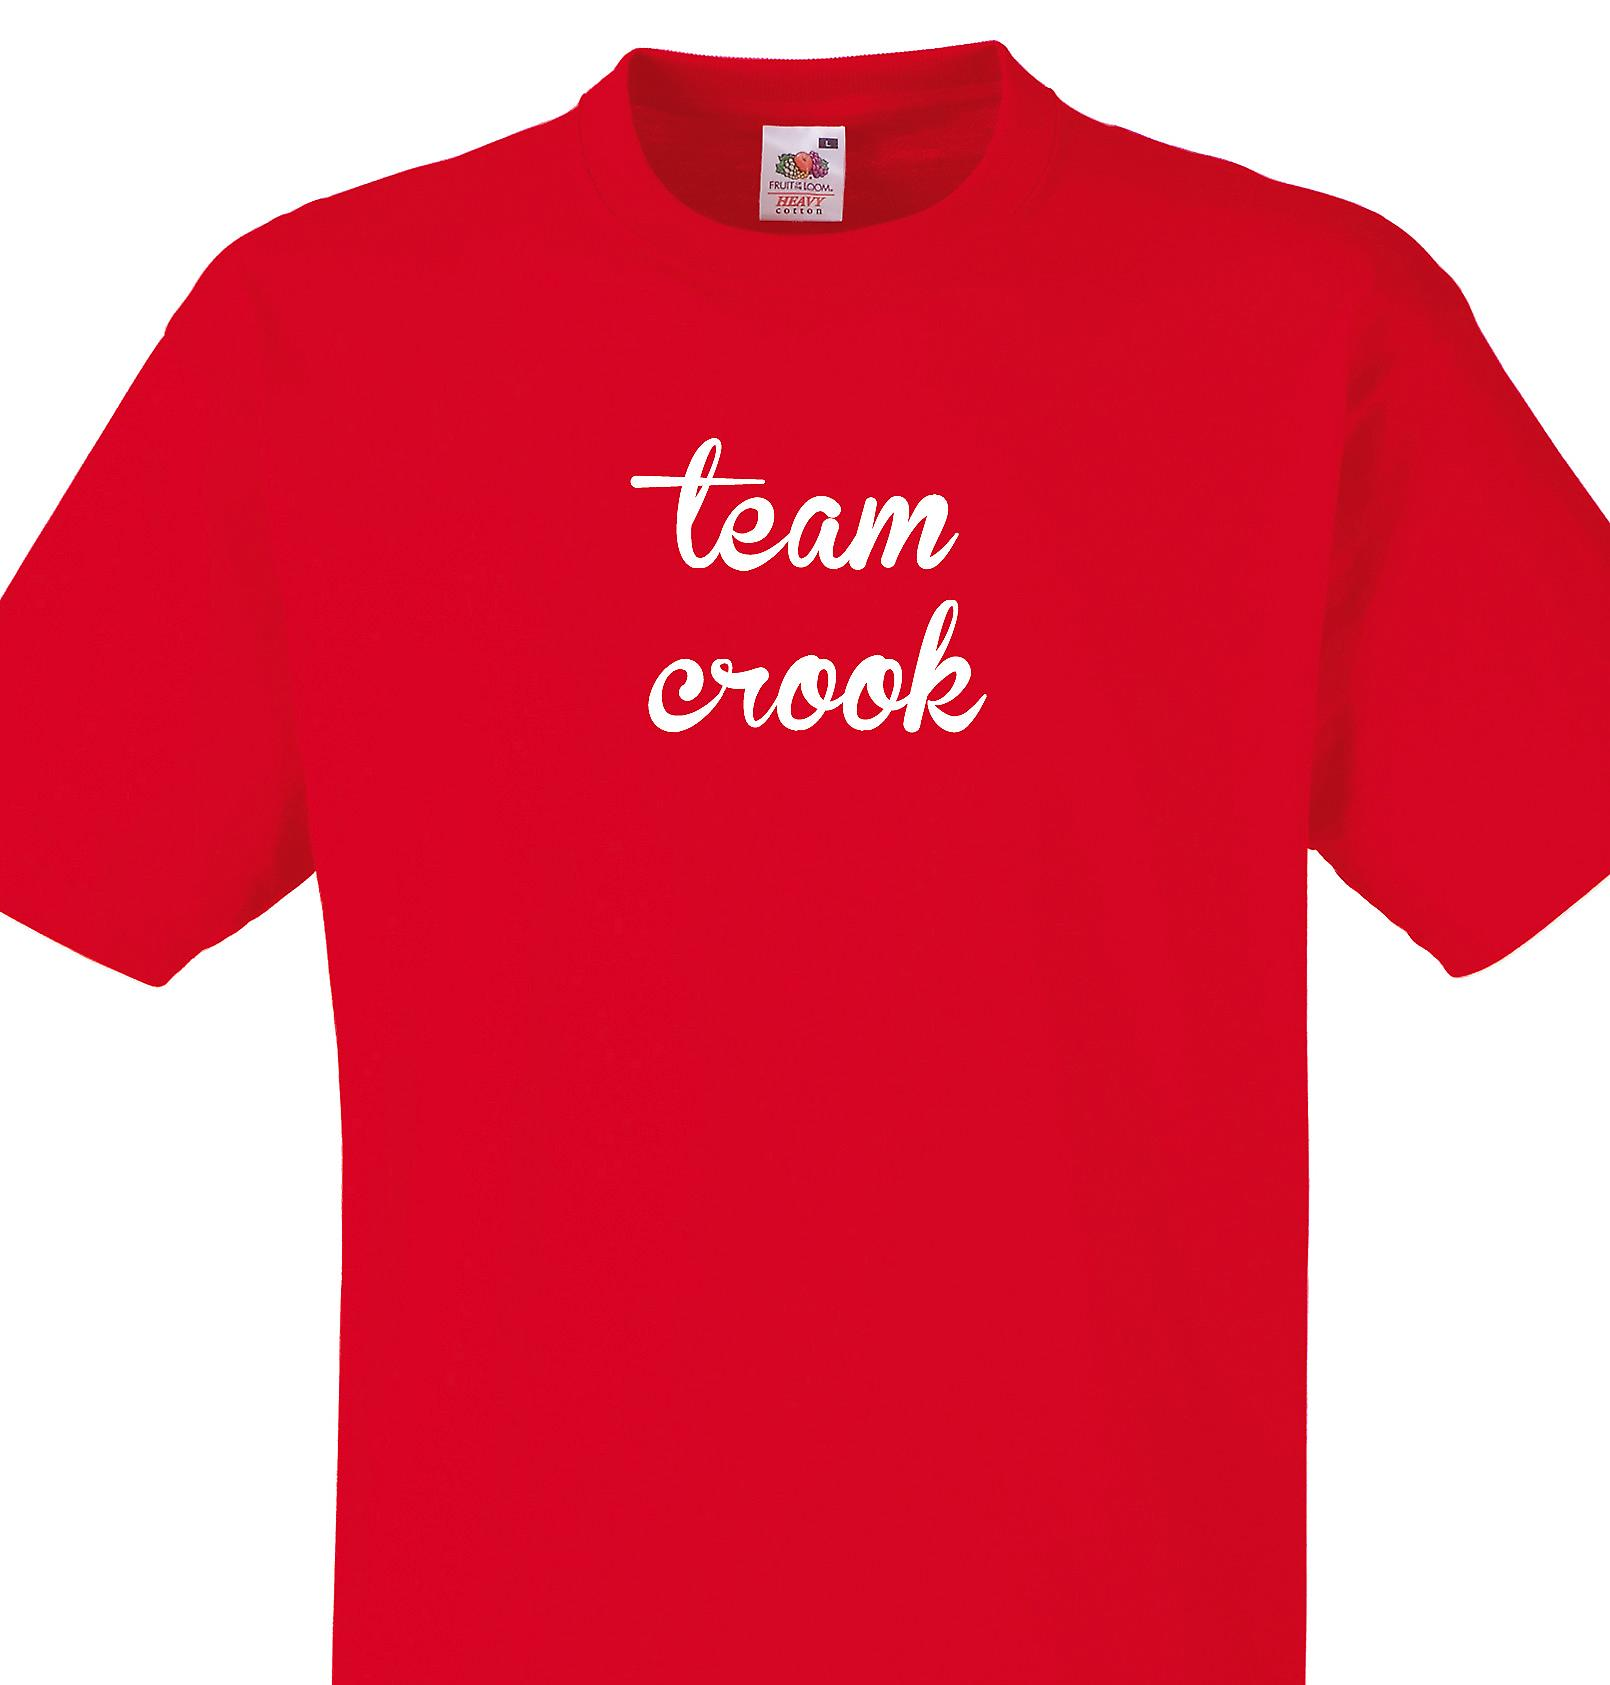 Team Crook Red T shirt